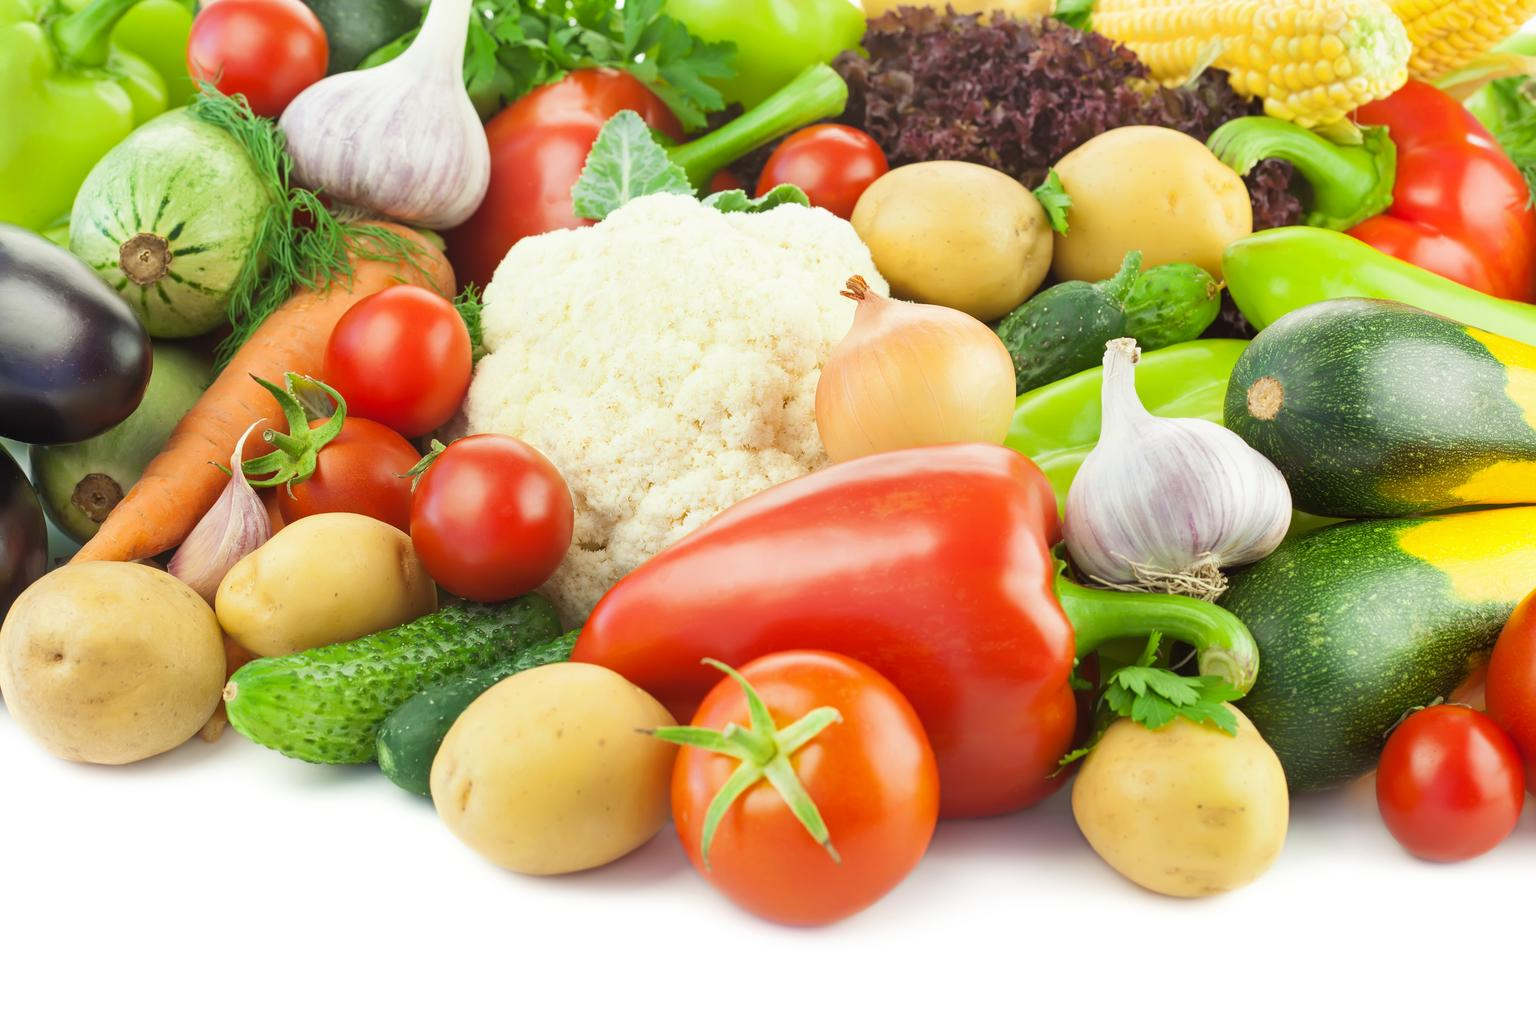 healthy eating fresh vegetables